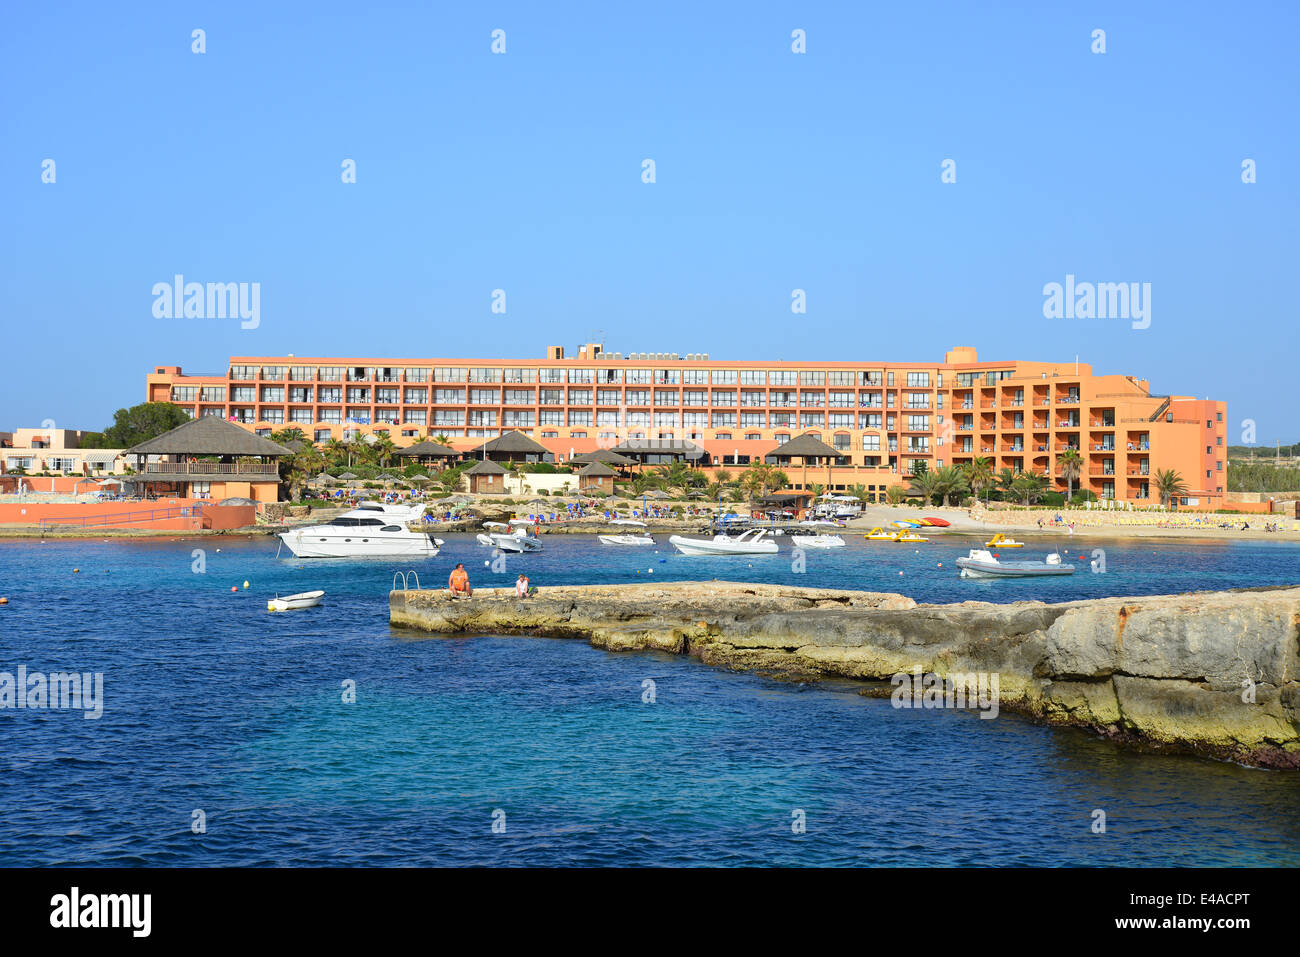 Malta Hotel Ramla Bay Resort